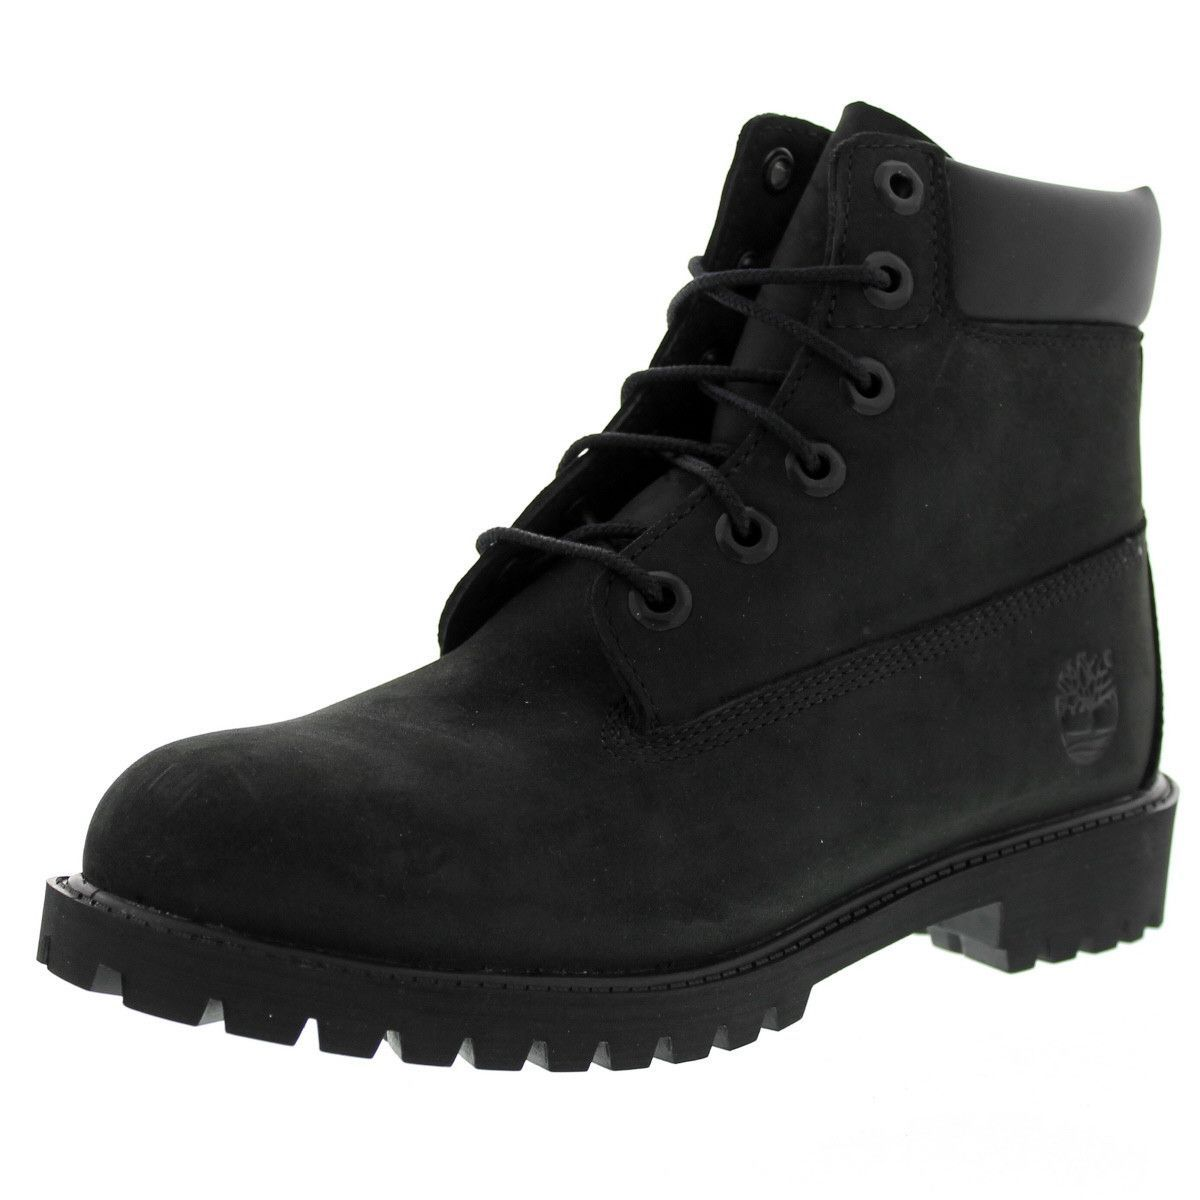 8926d89e582f Timberland - Kids  6 Inch Premium Waterproof Boot (Big Kid) - Black Nubuck